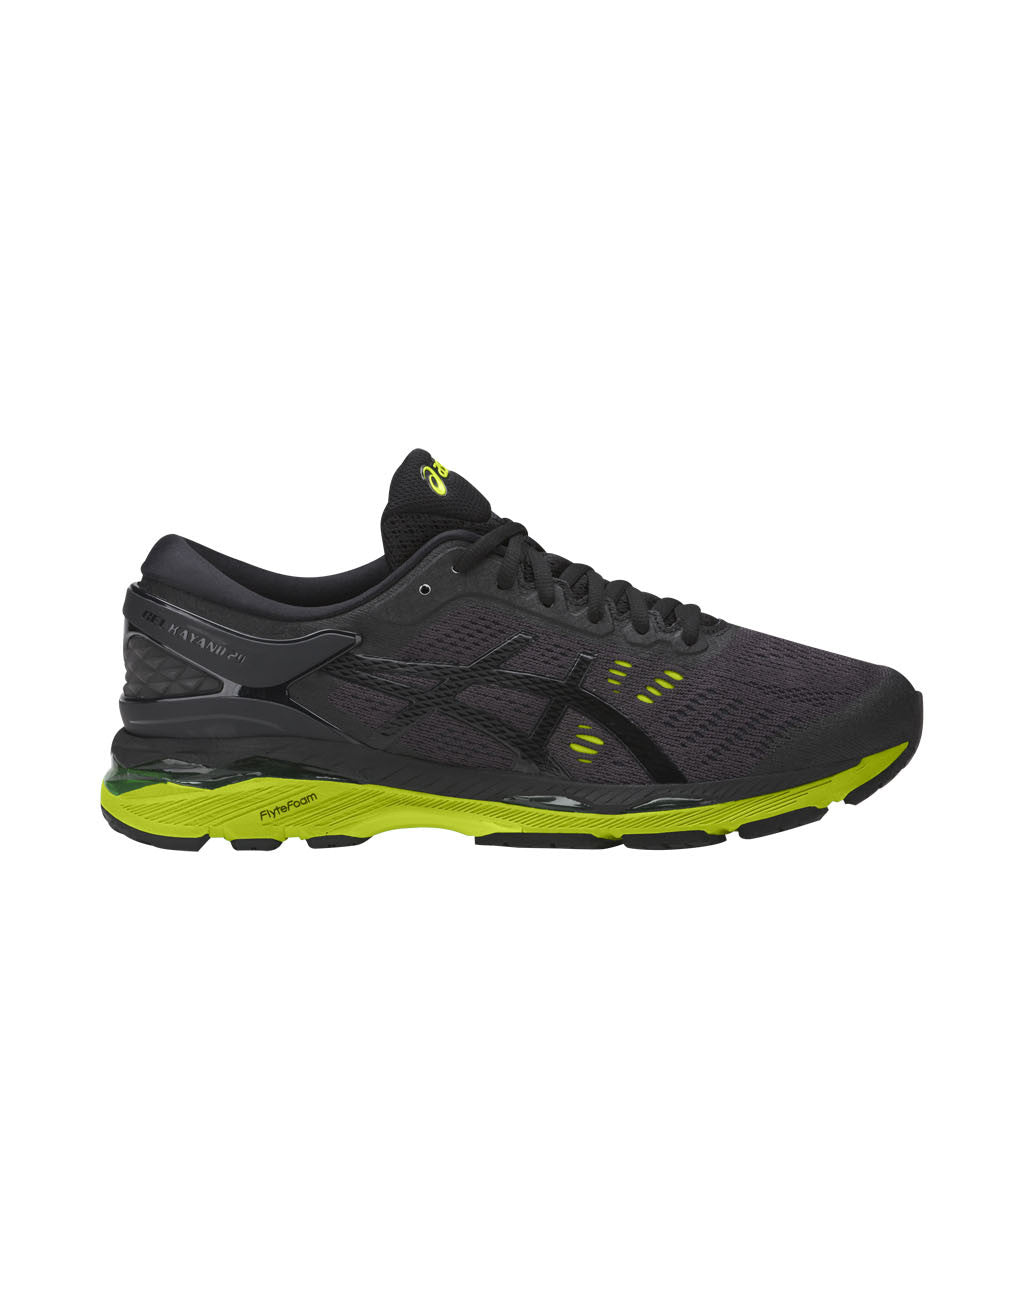 ASICS GEL-Kayano 24 (Men's)7_master_image